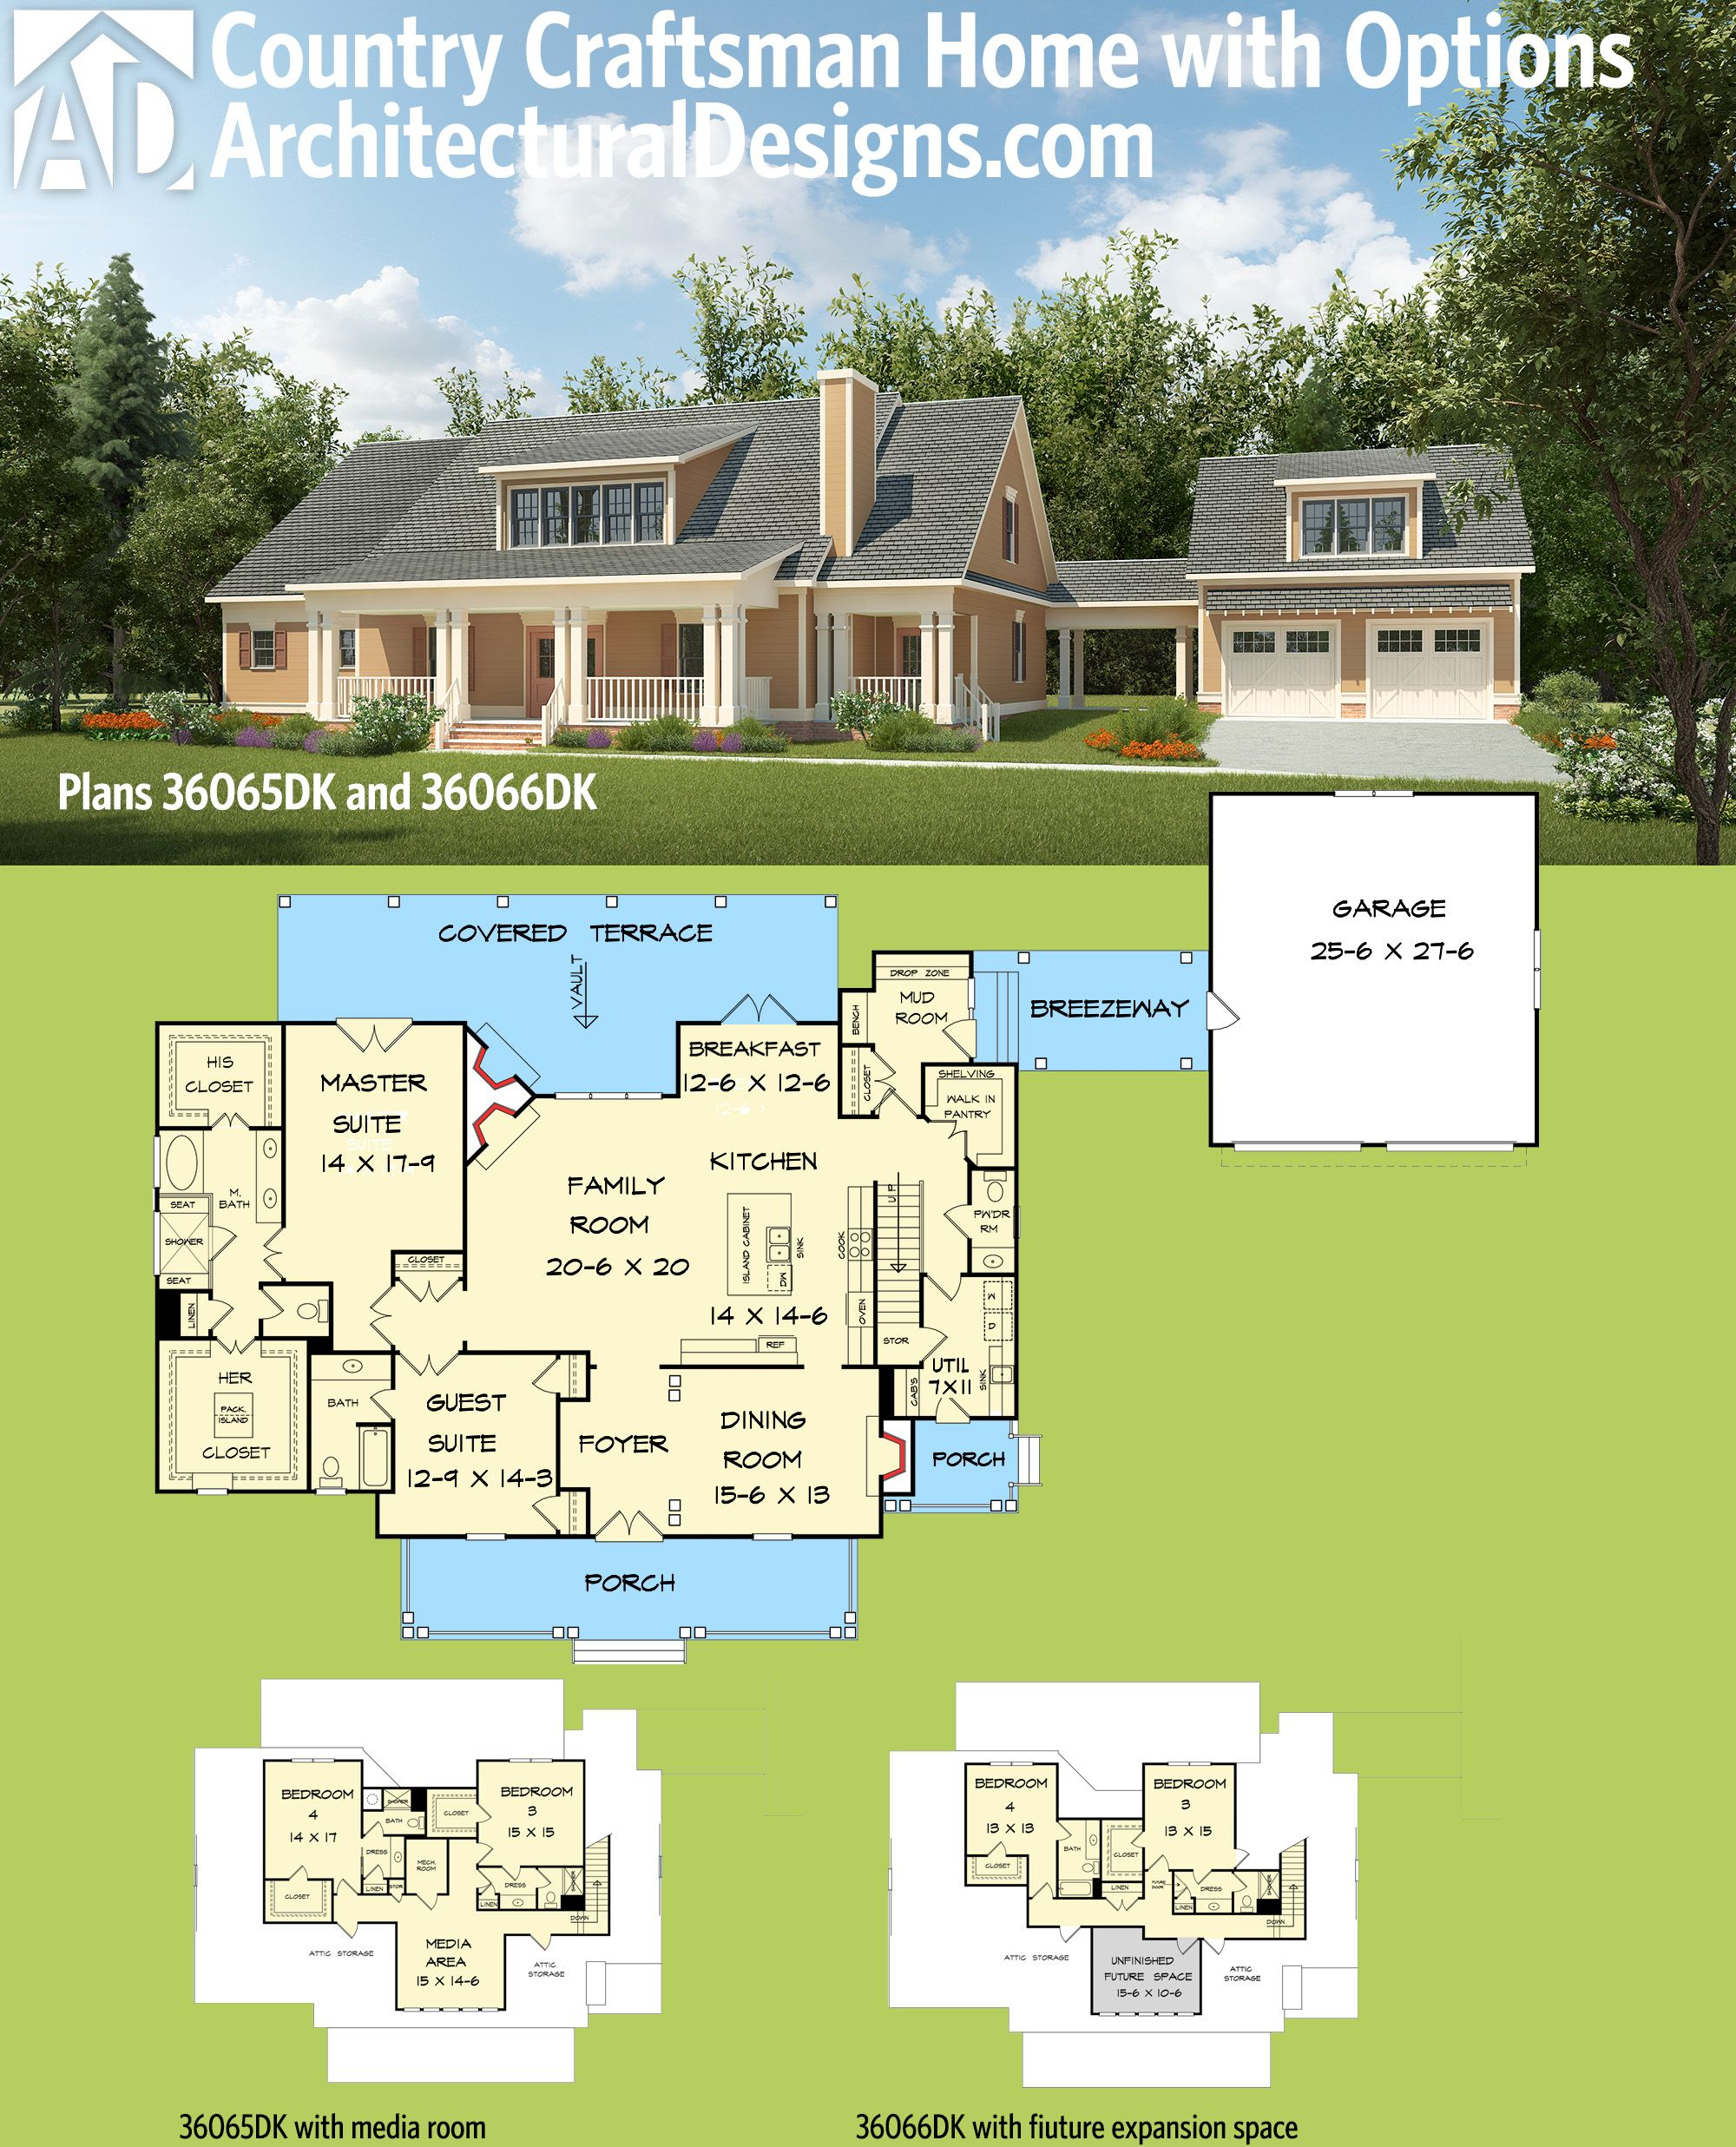 Plan 36065dk 4 beds and a breezeway architectural for House plans with future expansion